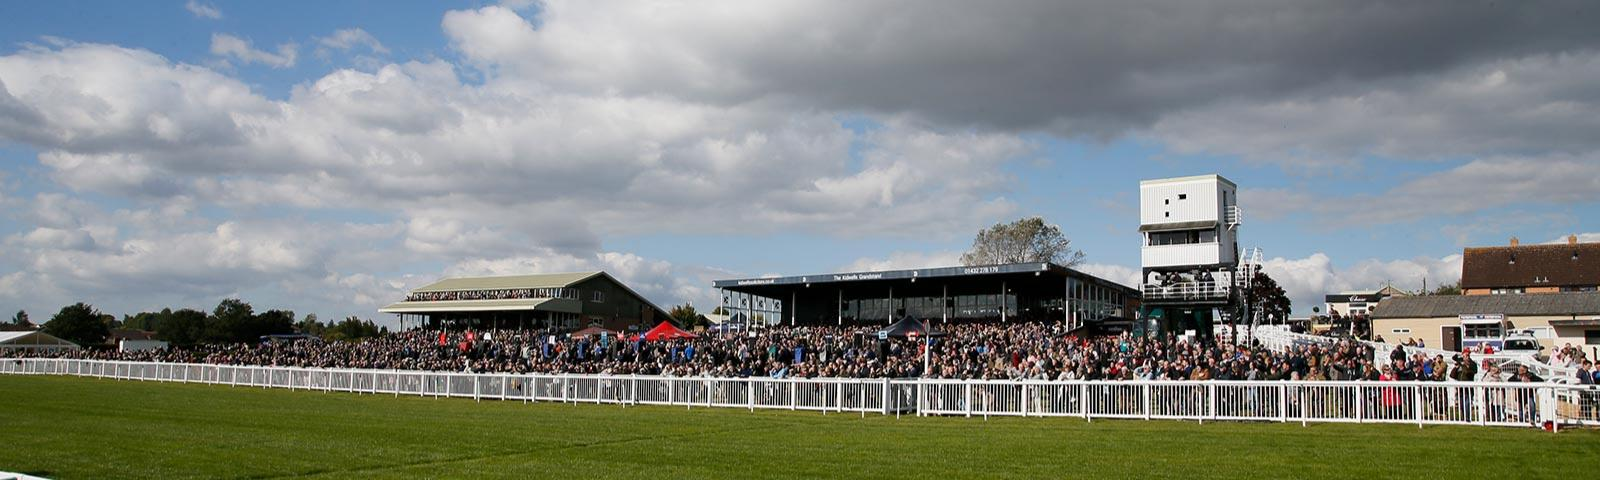 Crowds watching the racing action at Hereford Racecourse.